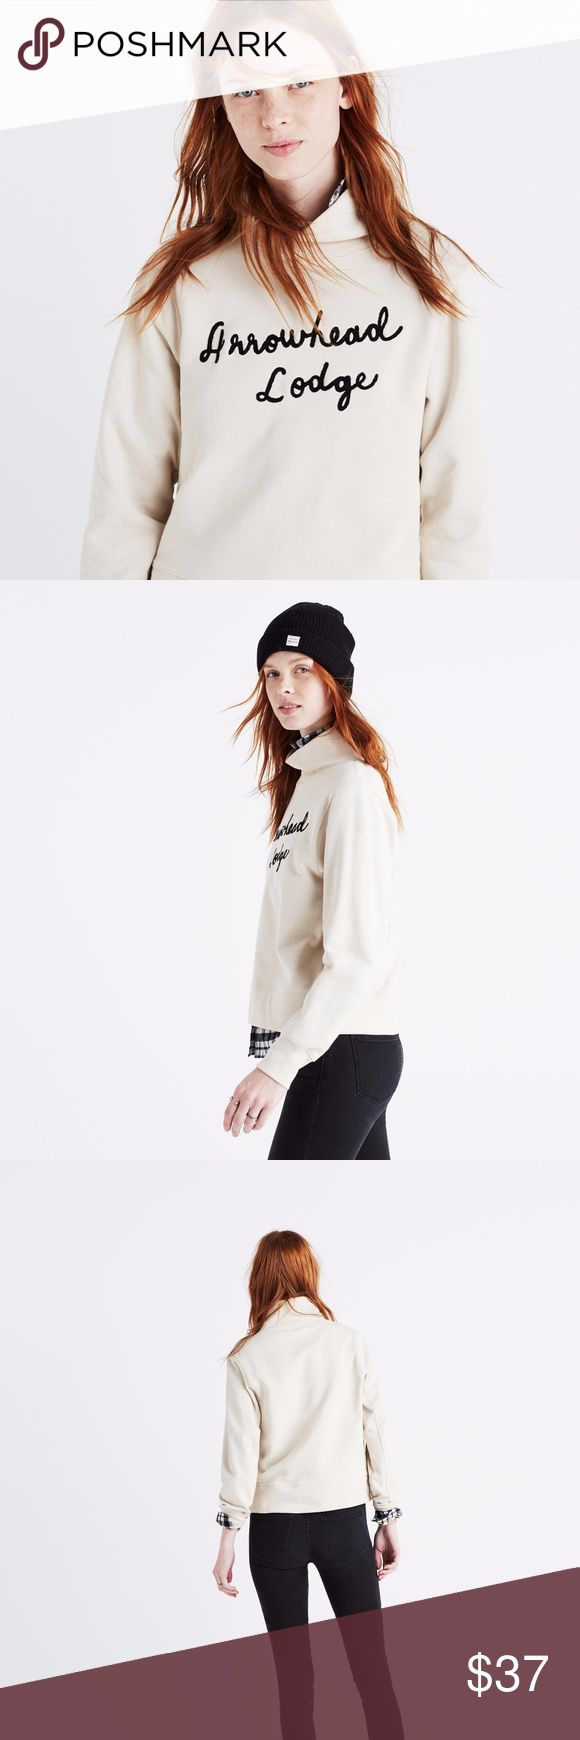 MADEWELL Arrowhead Cream Lodge Sweatshirt Sz S Slouchy and slightly cropped, this cozy funnelneck sweatshirt has fuzzy chain stitch embroidery inspired by a road trip our design team took to upstate New York.  - Boxy fit - Cotton - Style f9723  There's a reason everyone is obsessed with this sweatshirt. It's fantastic and so chic, while also being super cozy. Because it's a neutral cream/black, it will coordinate with all your Madewell flannel shirts.   Your new sweatshirt will ship to you…